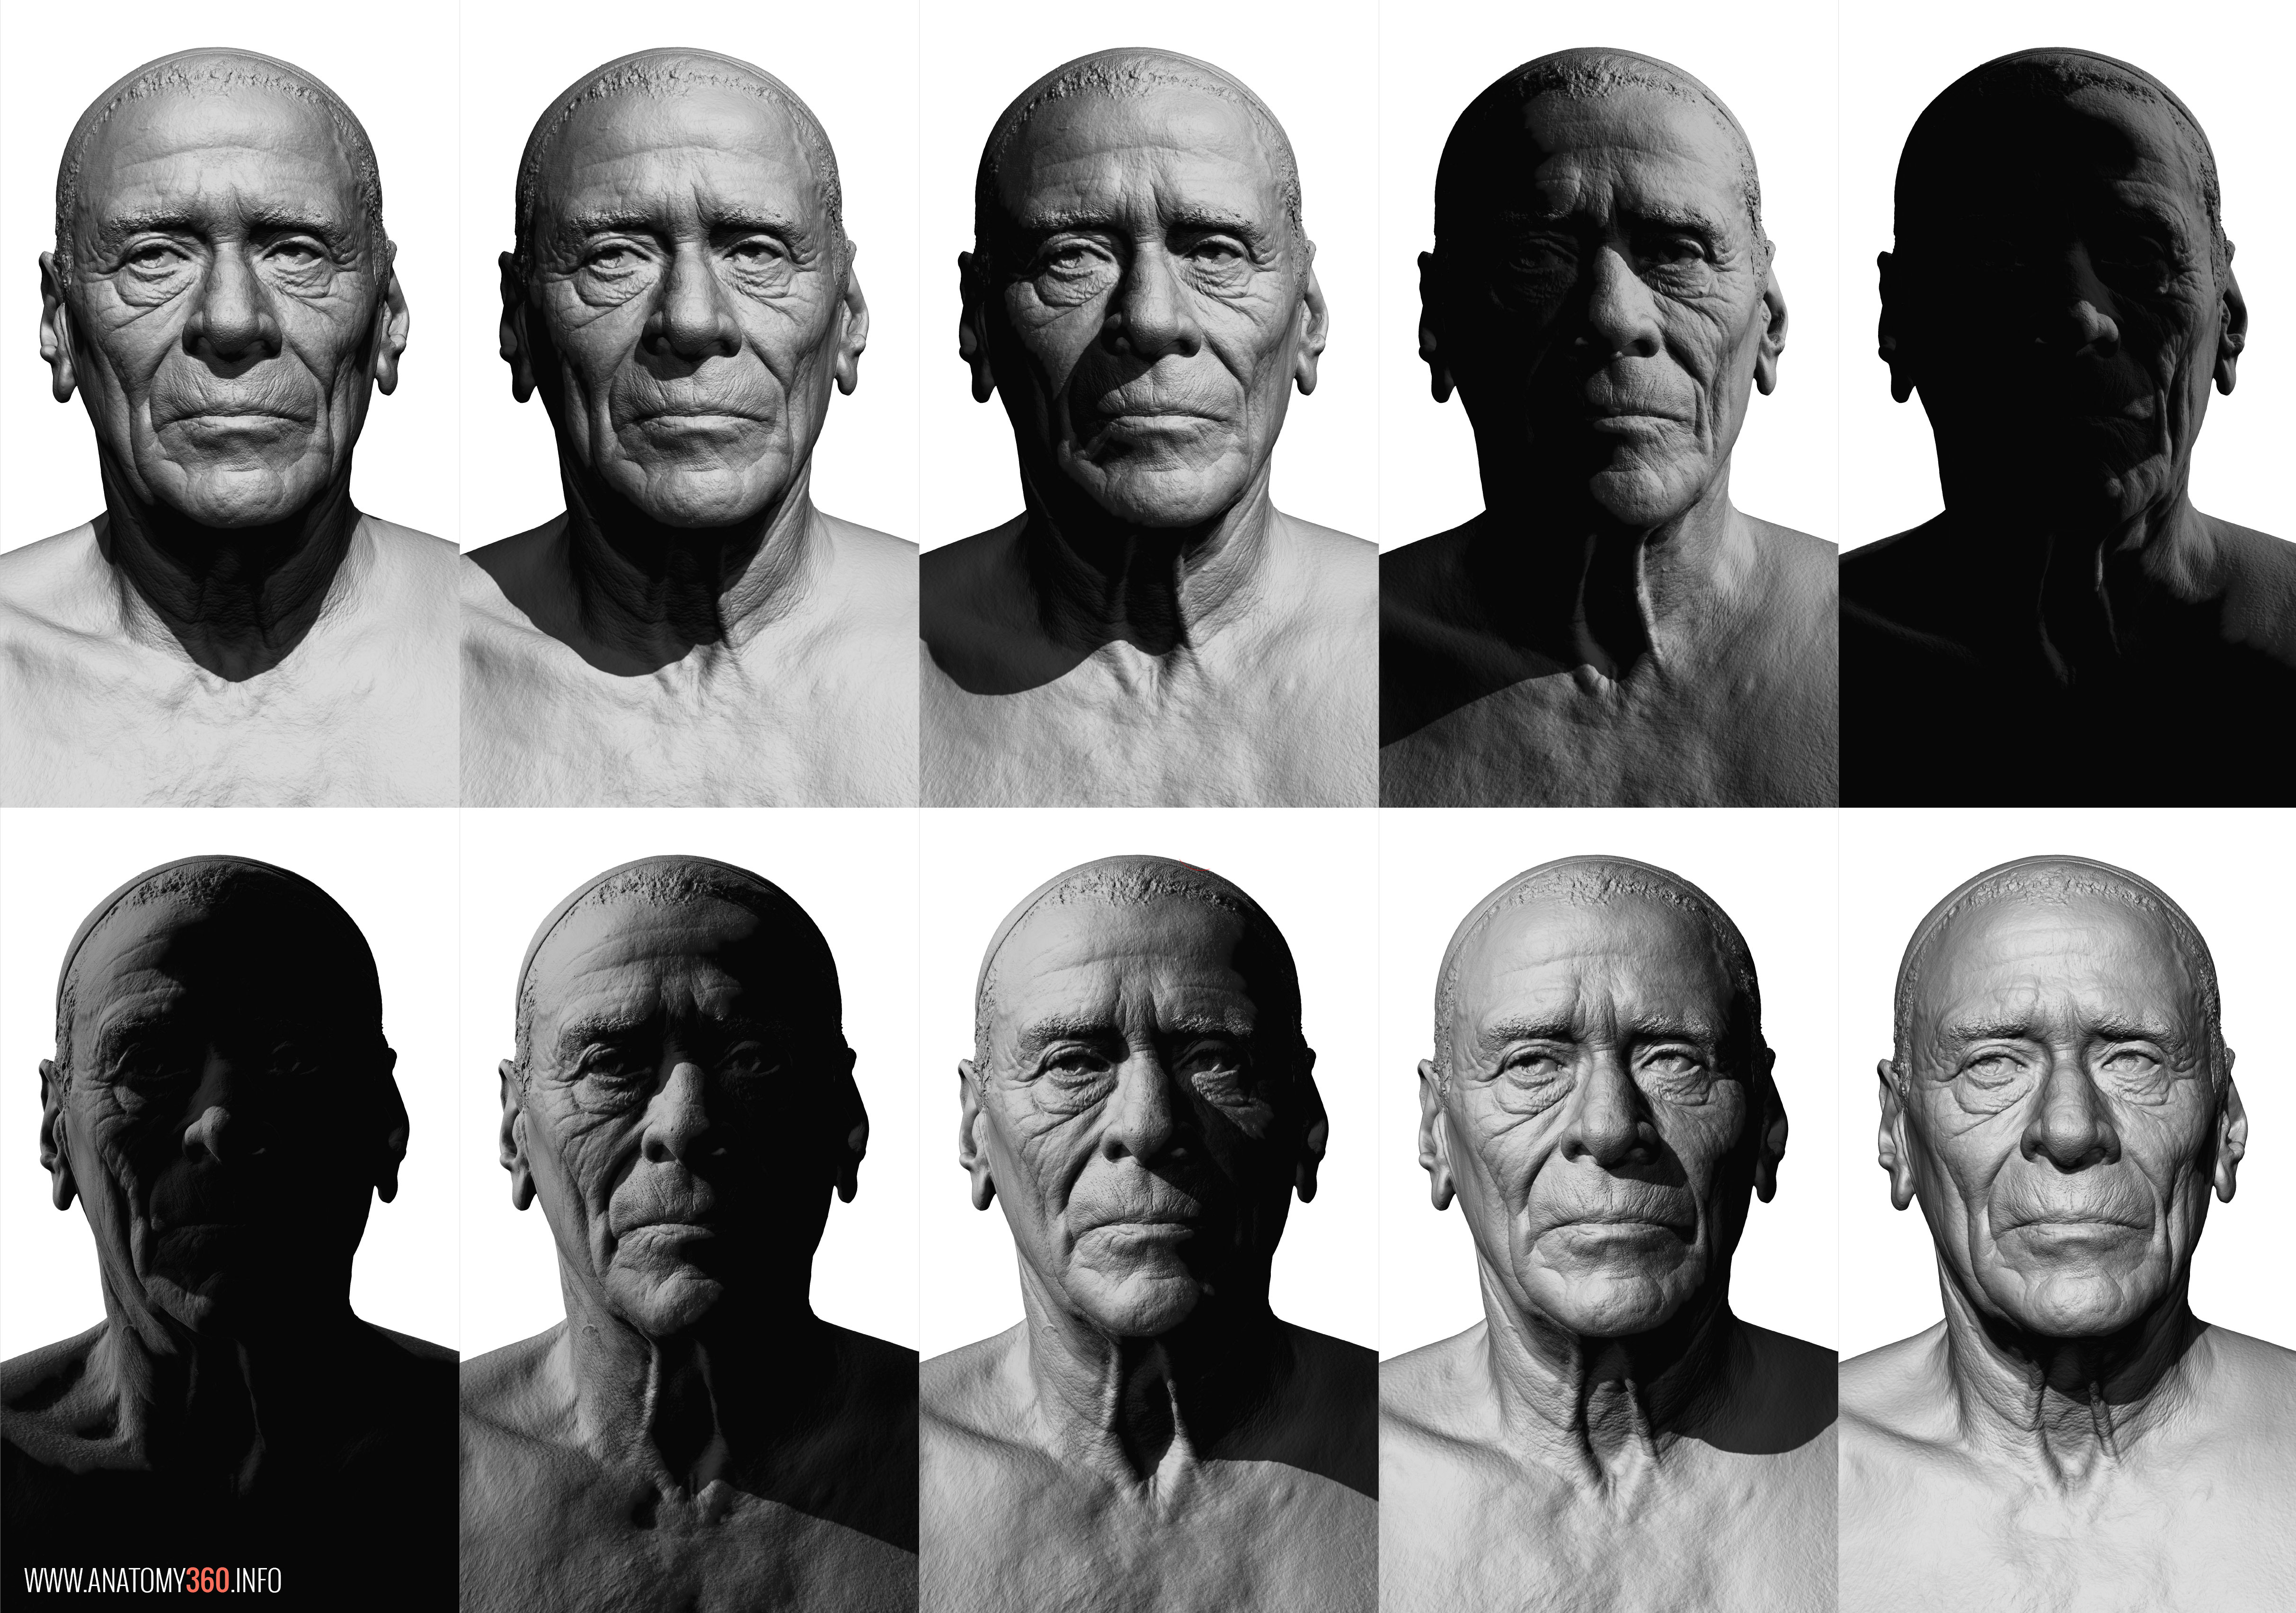 Head and Face Reference | Anatomy 360